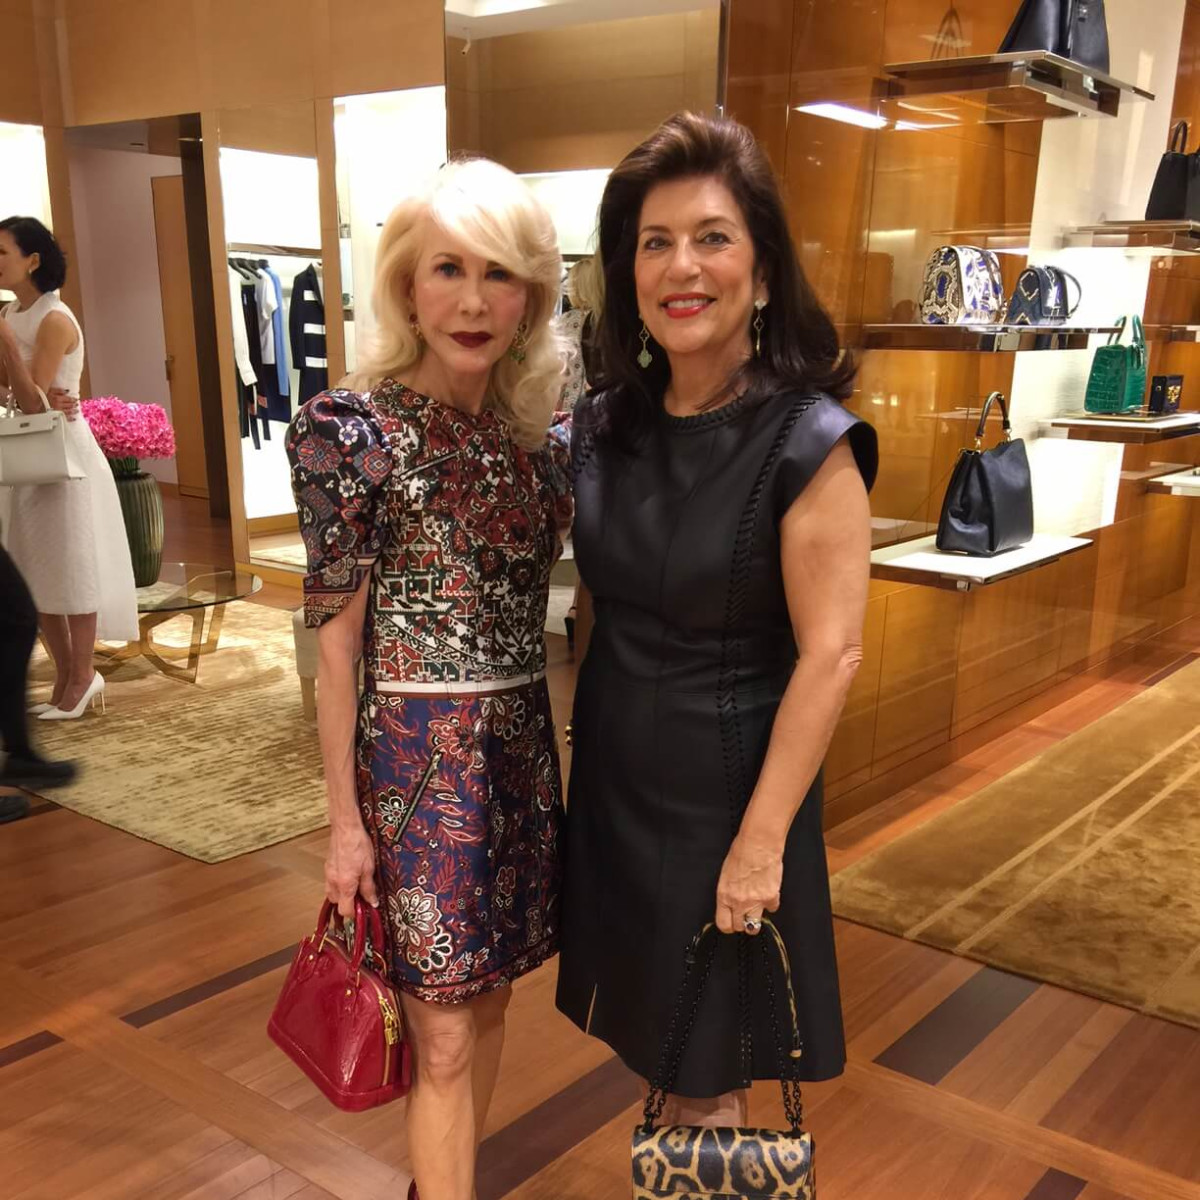 Vogue, Louis Vuitton lunch, 9/26 Diane Lokey Farb, Dancie Ware